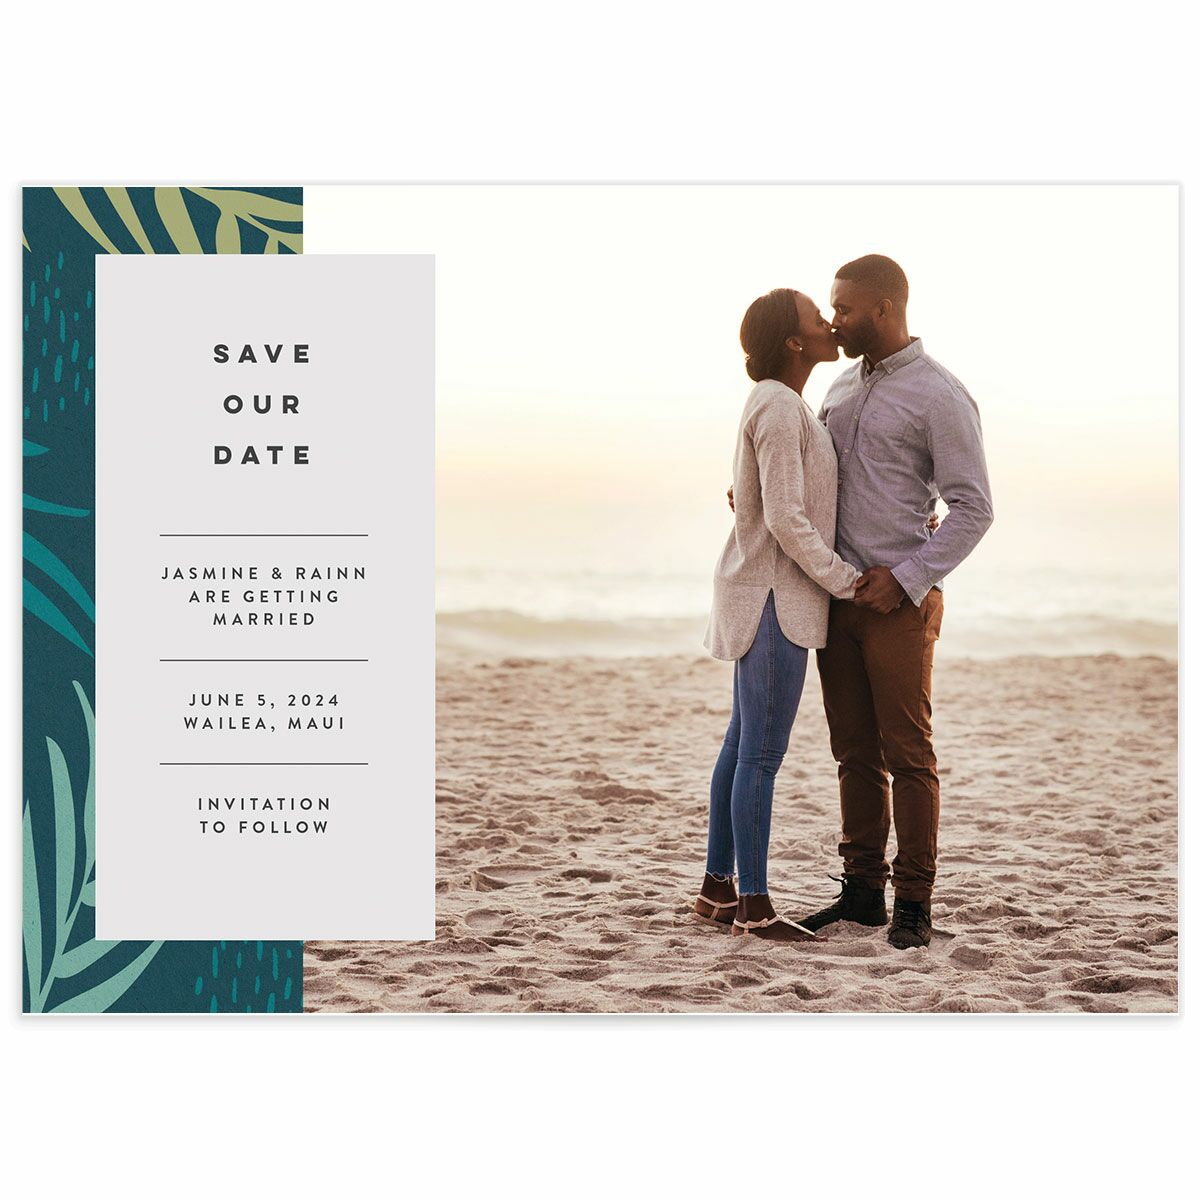 A Save the Date from the Modern Palm Collection